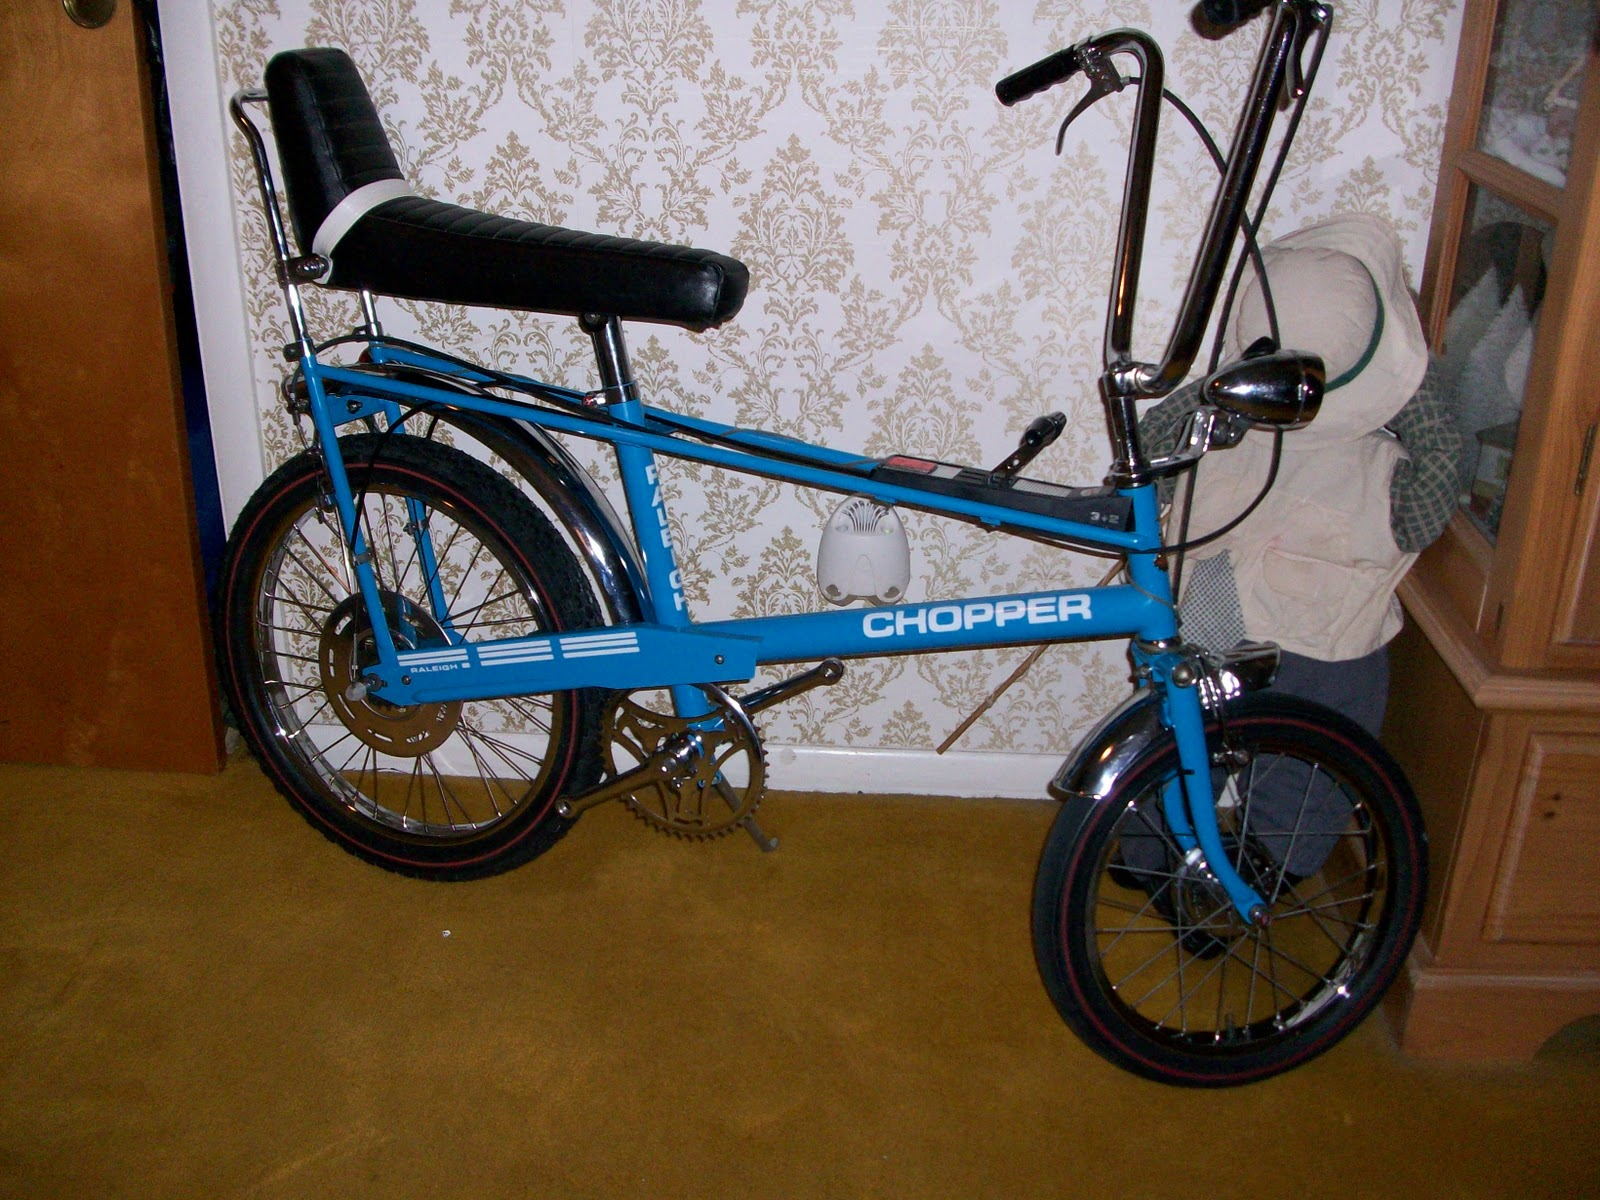 8012c14a587 This is my 1971 raleigh chopper 3+2 that I purchased off ebay as a basket  case. the rear sturmey archer S5 hub is dated 11 71 and the front dyno hub  is ...